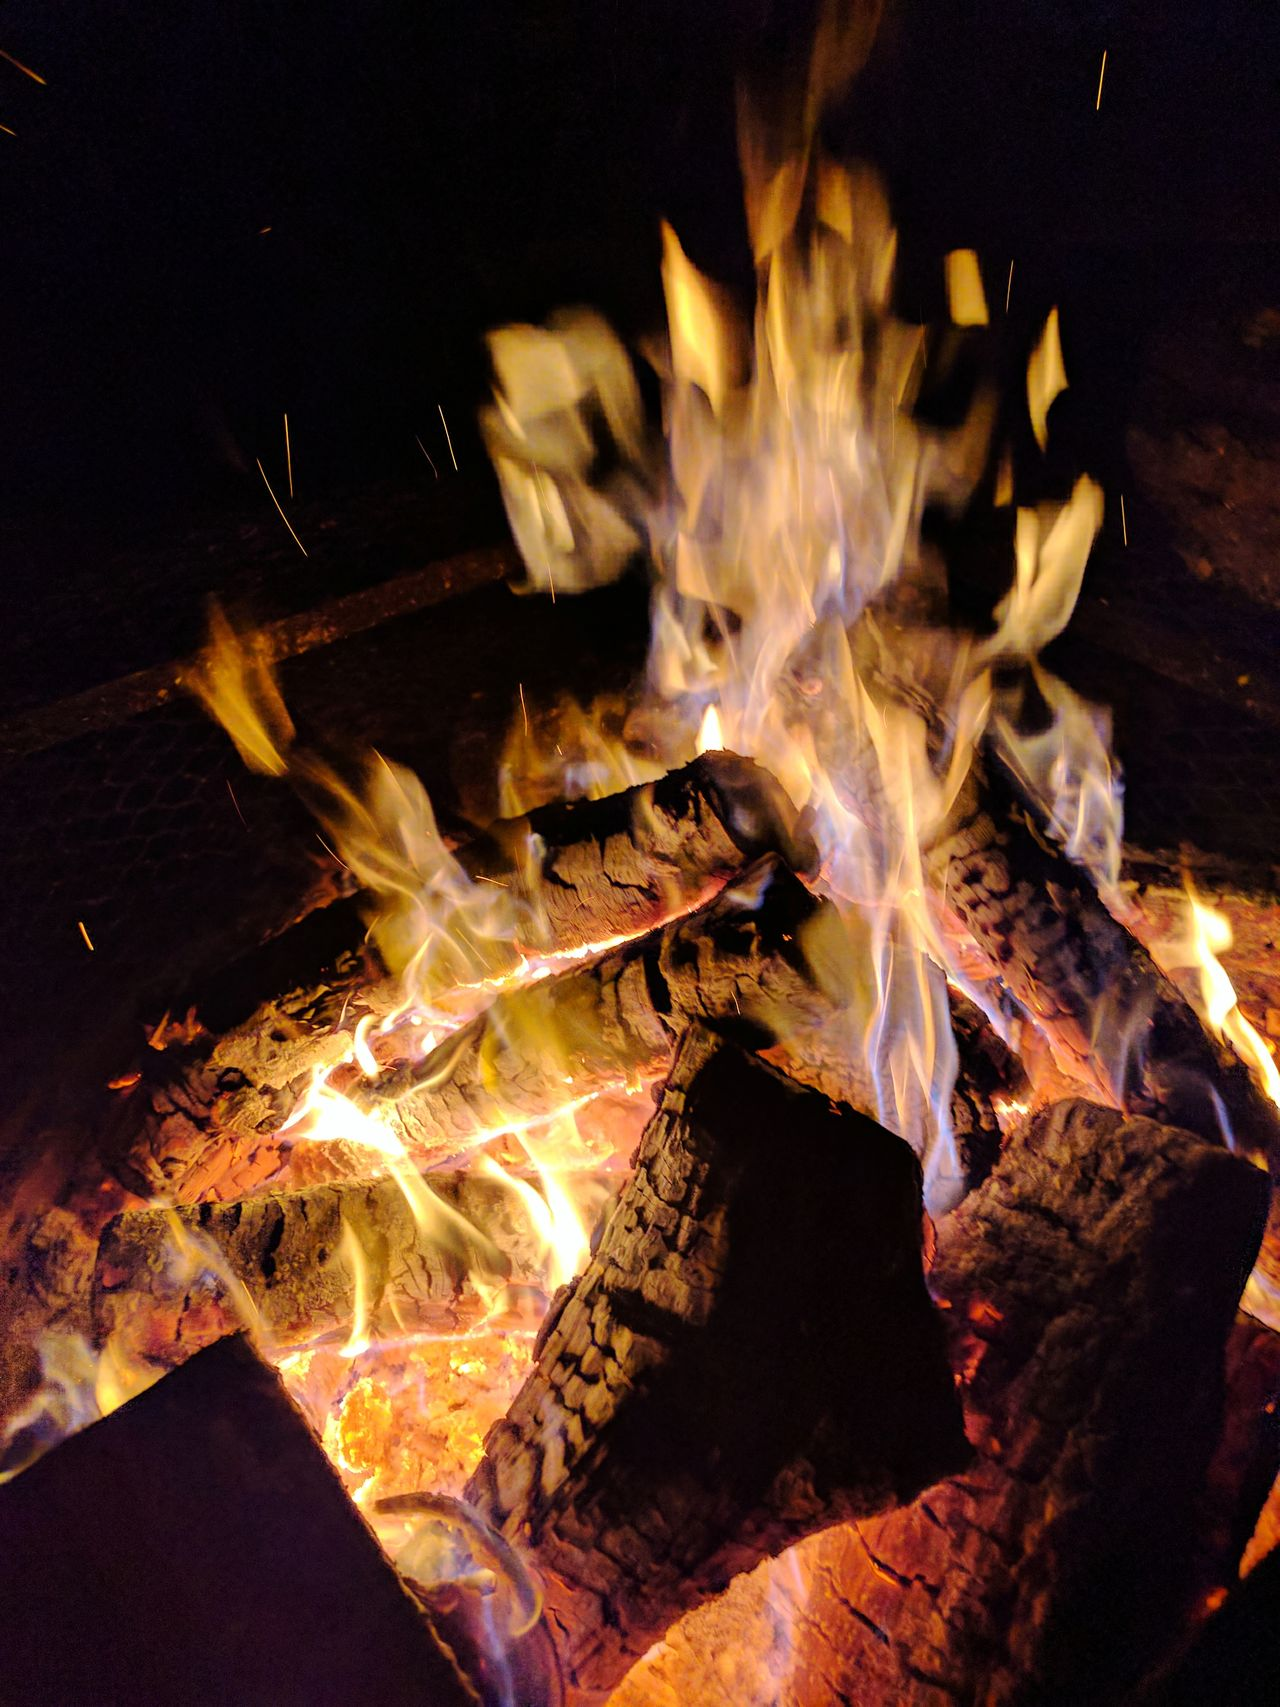 Blazing Fire. Heat - Temperature Flame Motion Close-up Speed Burning No People Night Outdoors Fire Fire - Natural Phenomenon Firewood Outdoorlife Outdoor Fire Burning Flames Flames And Wood Flames Dancing Flames And Fire Flameshots Fire Shot Fireporn Firepits